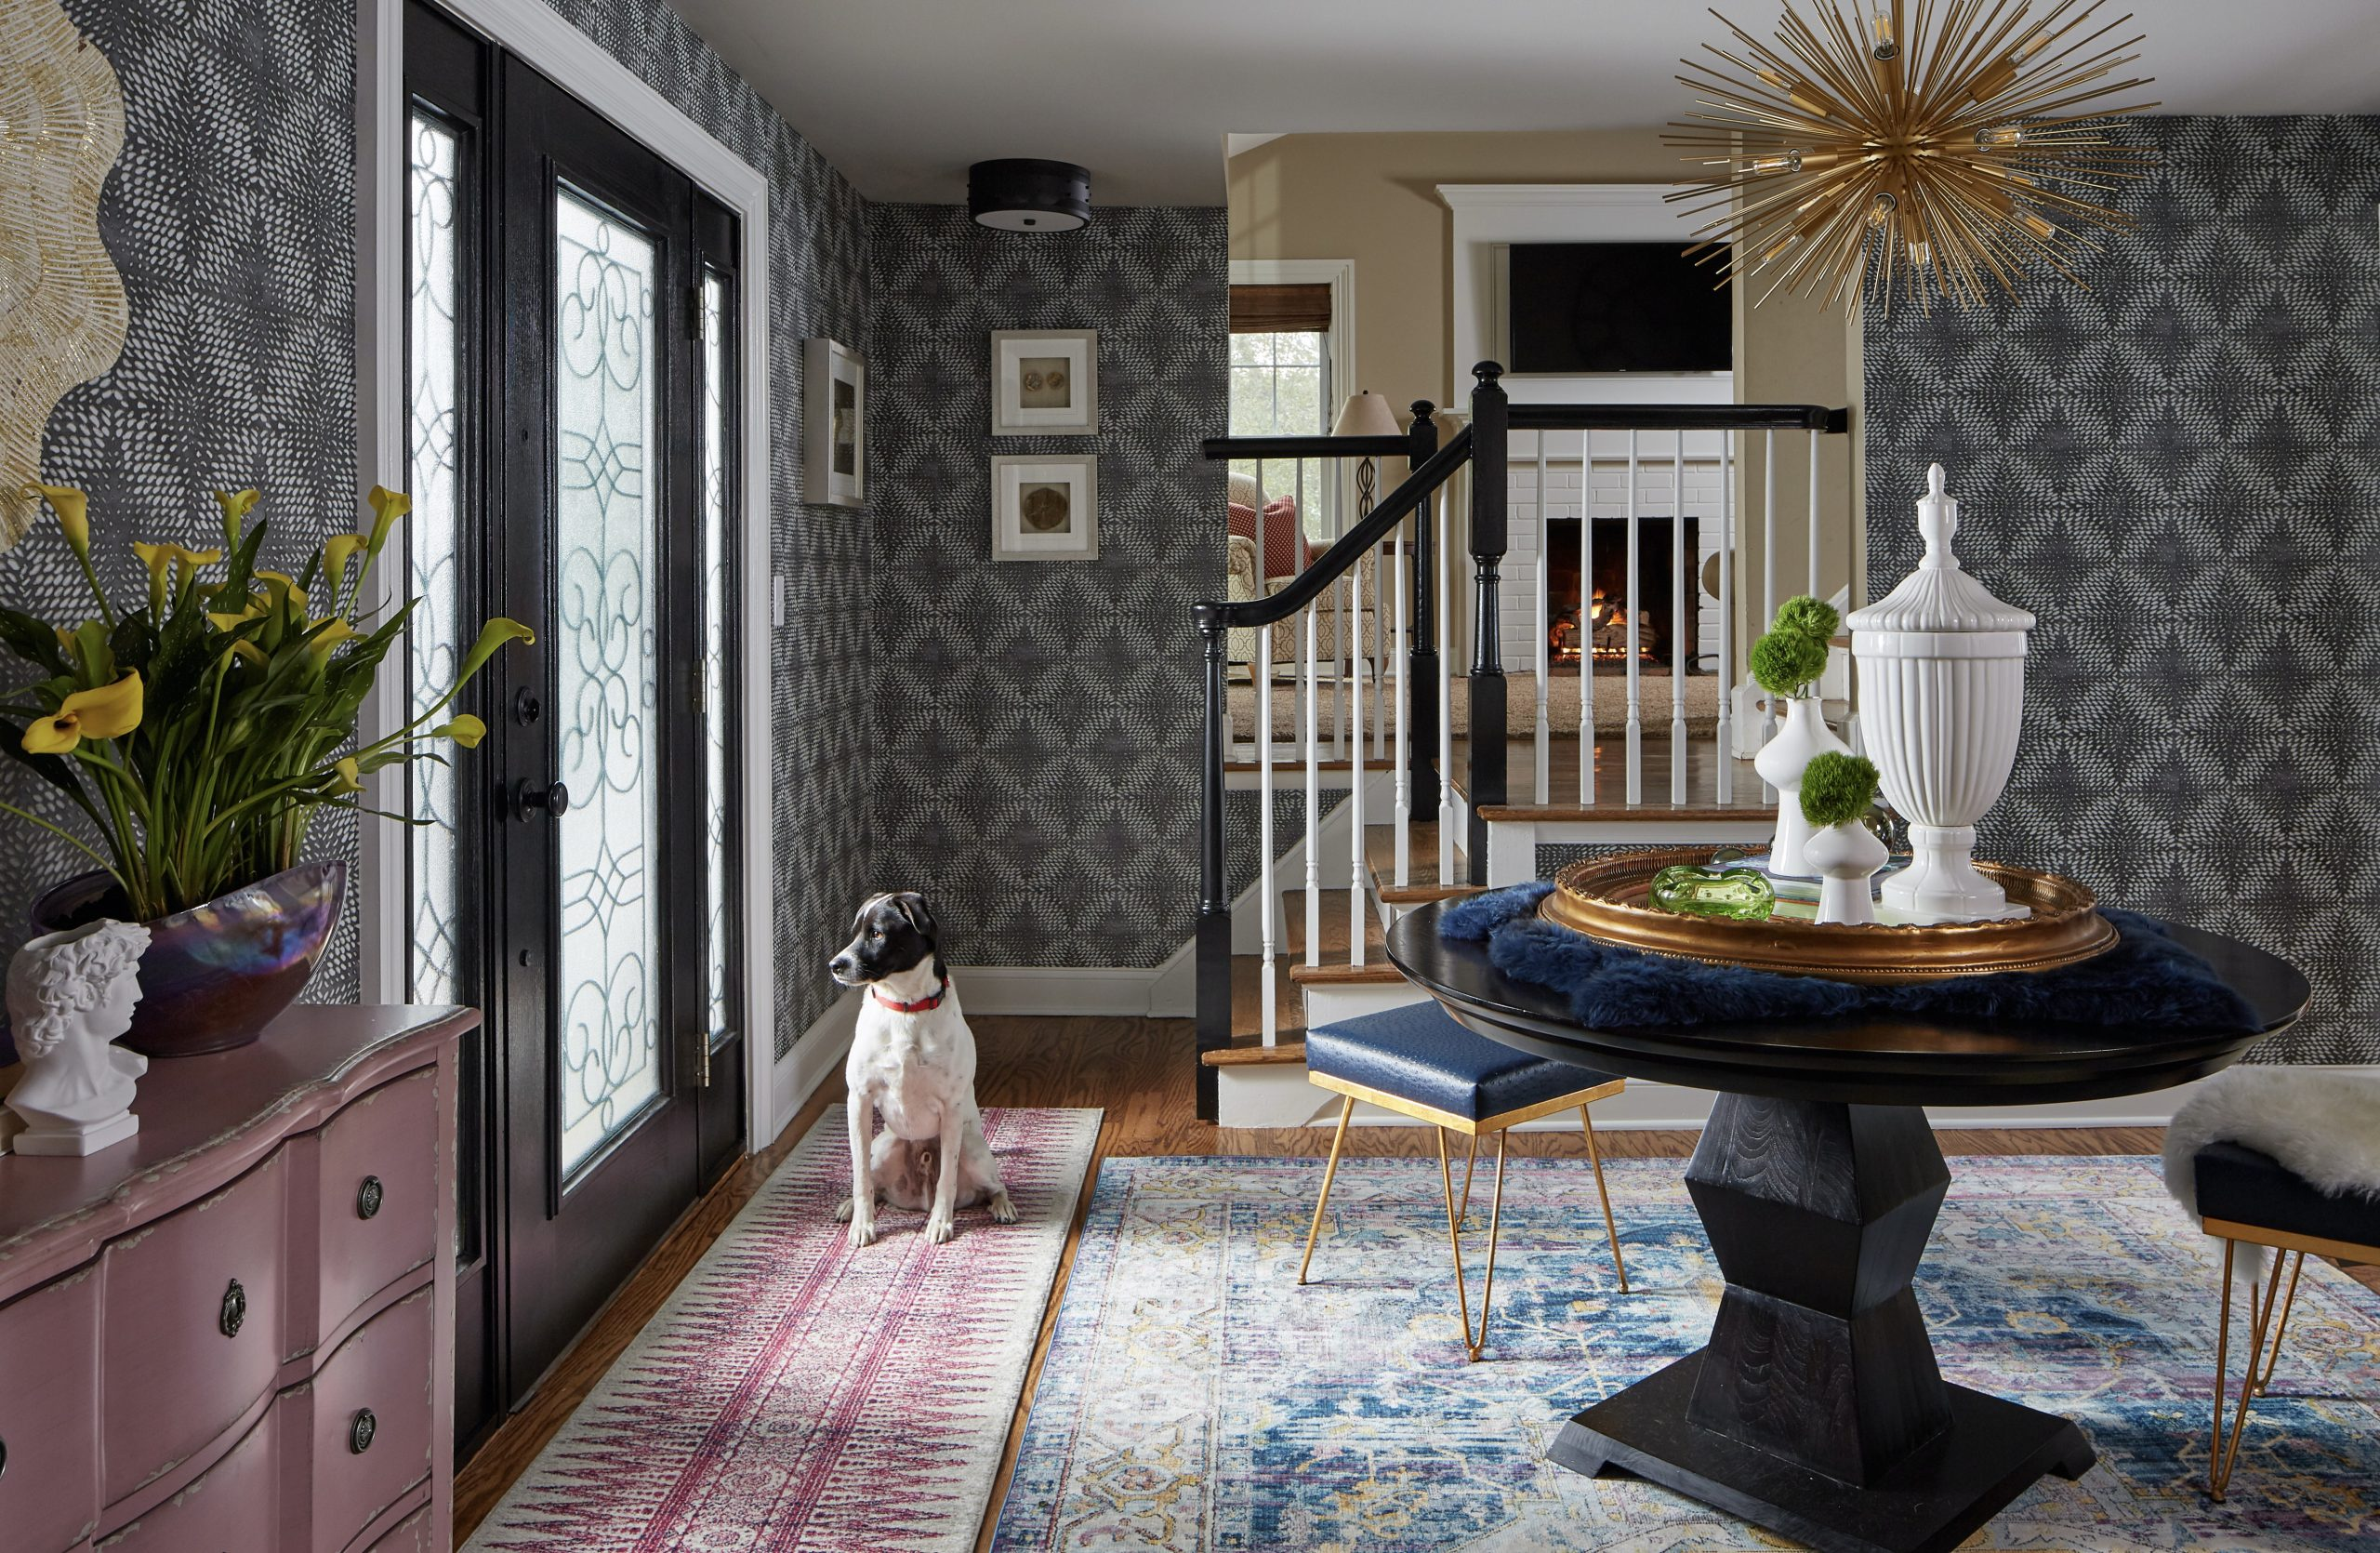 HGTV, Christine Kohut Interiors, ENTRYWAY, CENTERPIECE, AREA RUG, COLORFUL ROOM, FUNKY ROOM, BOLD DESIGN, PROJECT SHUT THE FRONT DOOR, ONE ROOM CHALLENGE, BETTER HOMES AND GARDENS, ORC FALL 2018, #DESIGNNINJA, #ONEROOMCHALLENGE, #BHGORC, #PROJECTSHUTTHEFRONTDOOR, close up, before and after, DECORATING, SPUTNIK CHANDELIER, FOYER, WALLPAPER